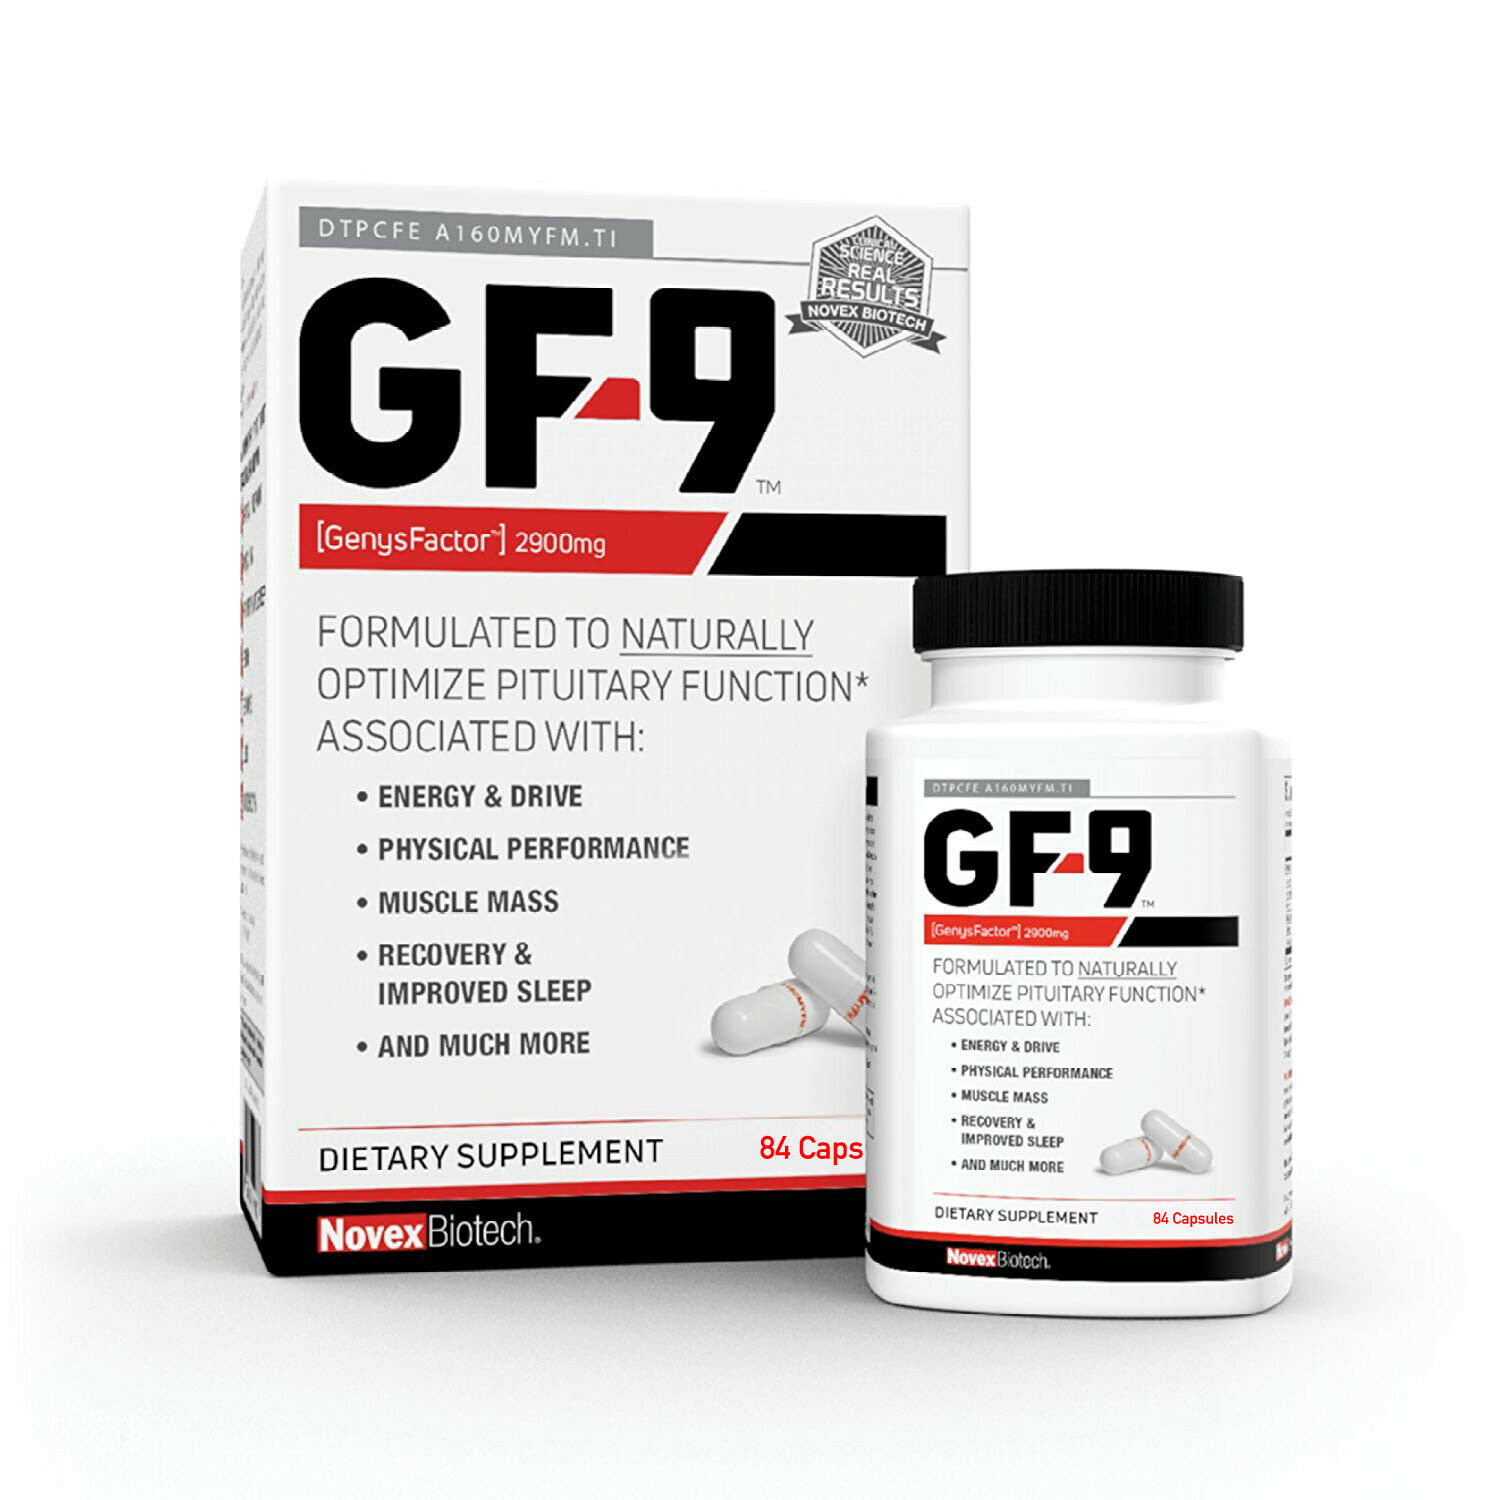 1Novex Biotech GF9 Growth Factor 9 Supplement 84 Capsules FREE SHIP!